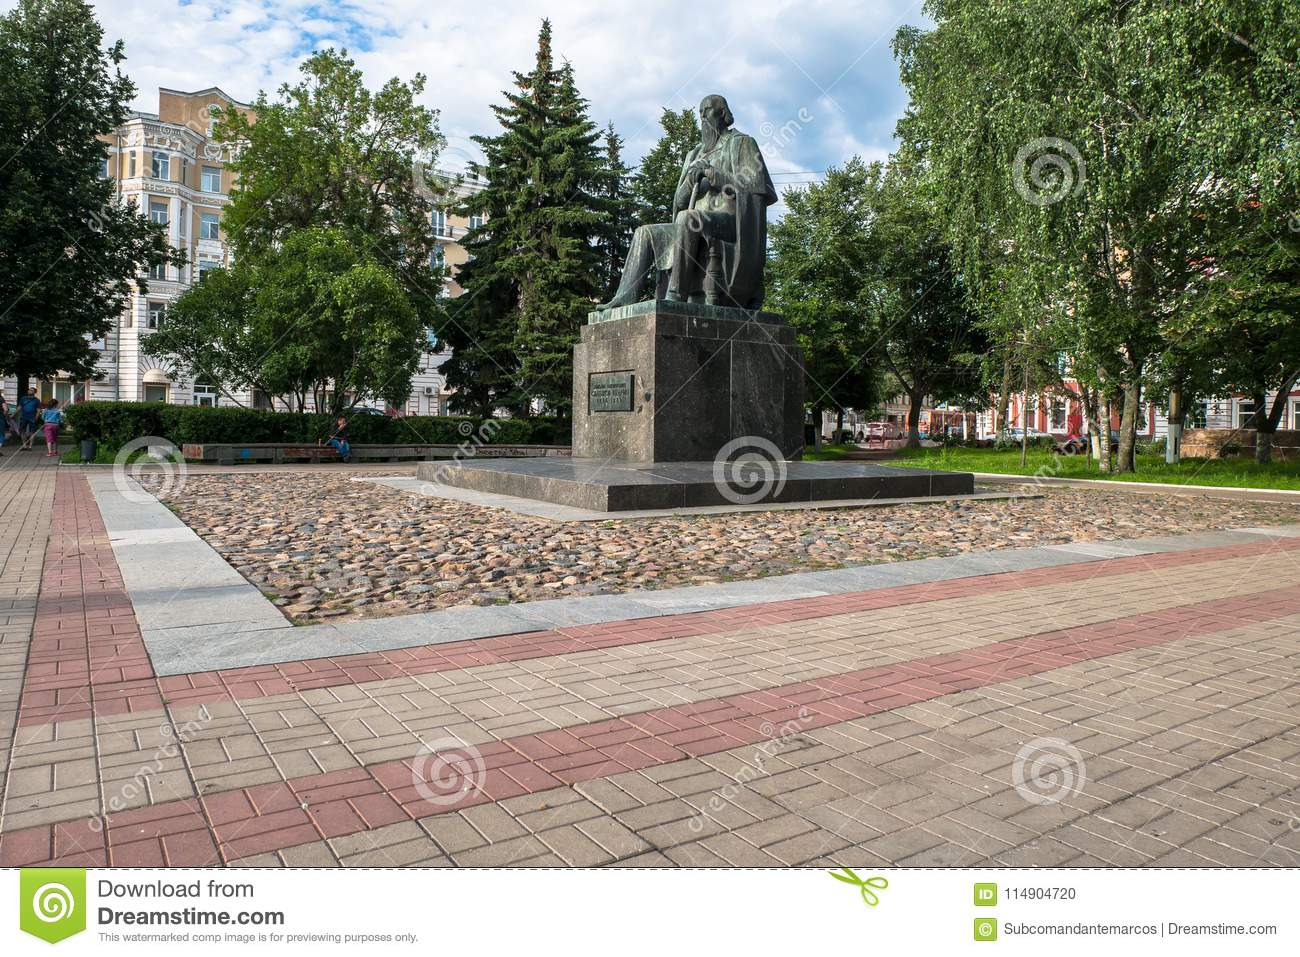 The monument to the major Russian satirist of the 19th century Saltykov-Shchedrin in the city of Tver, Russia.